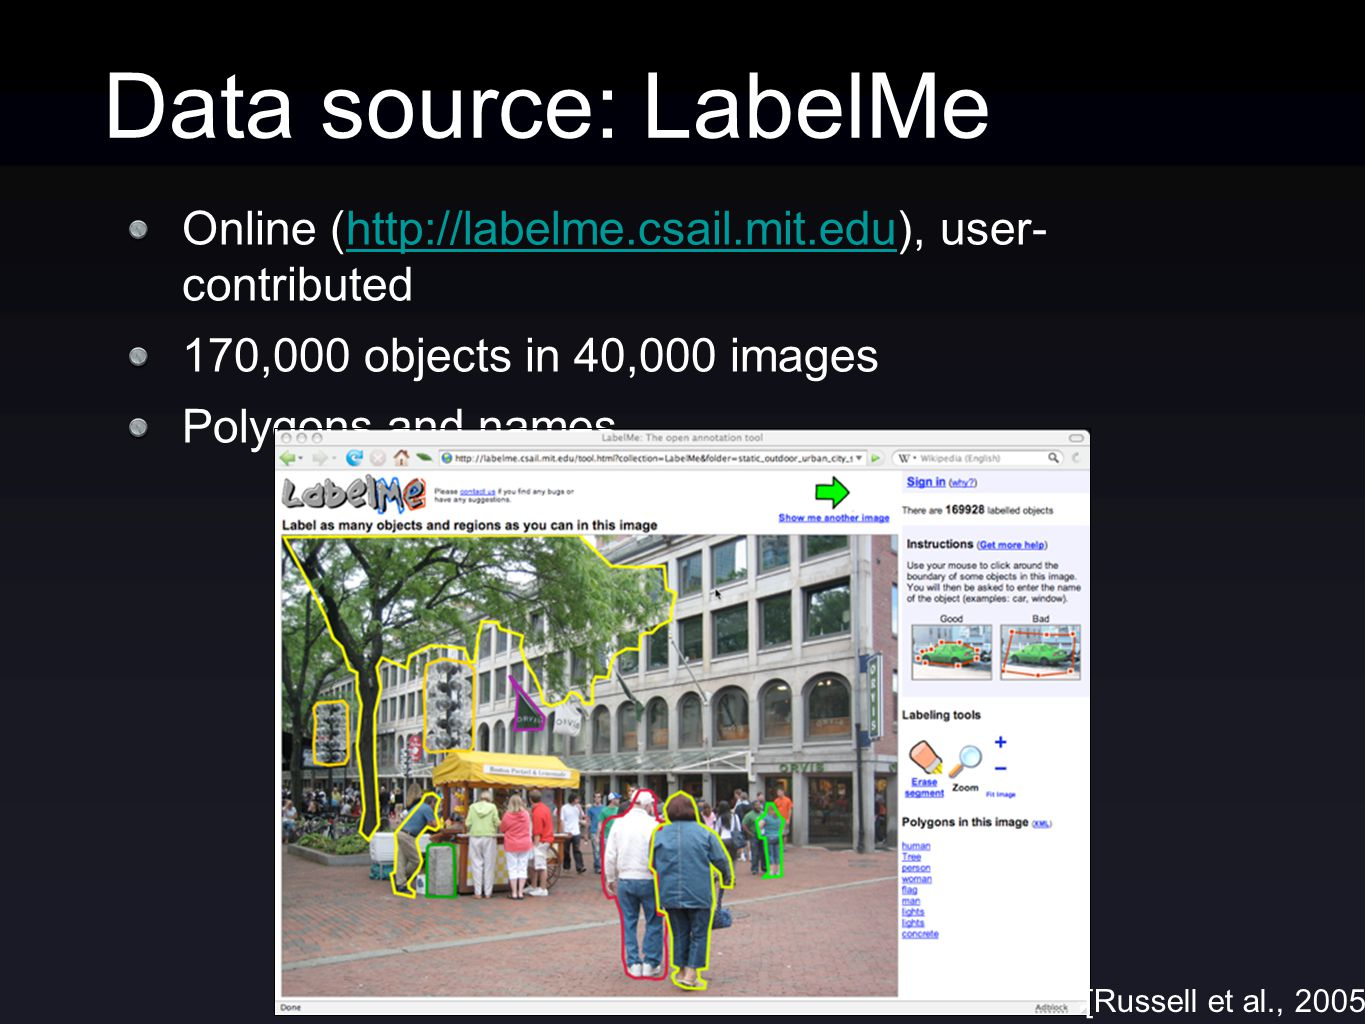 Data source: LabelMe Online (http://labelme.csail.mit.edu), user- contributedhttp://labelme.csail.mit.edu 170,000 objects in 40,000 images Polygons and names [Russell et al., 2005]